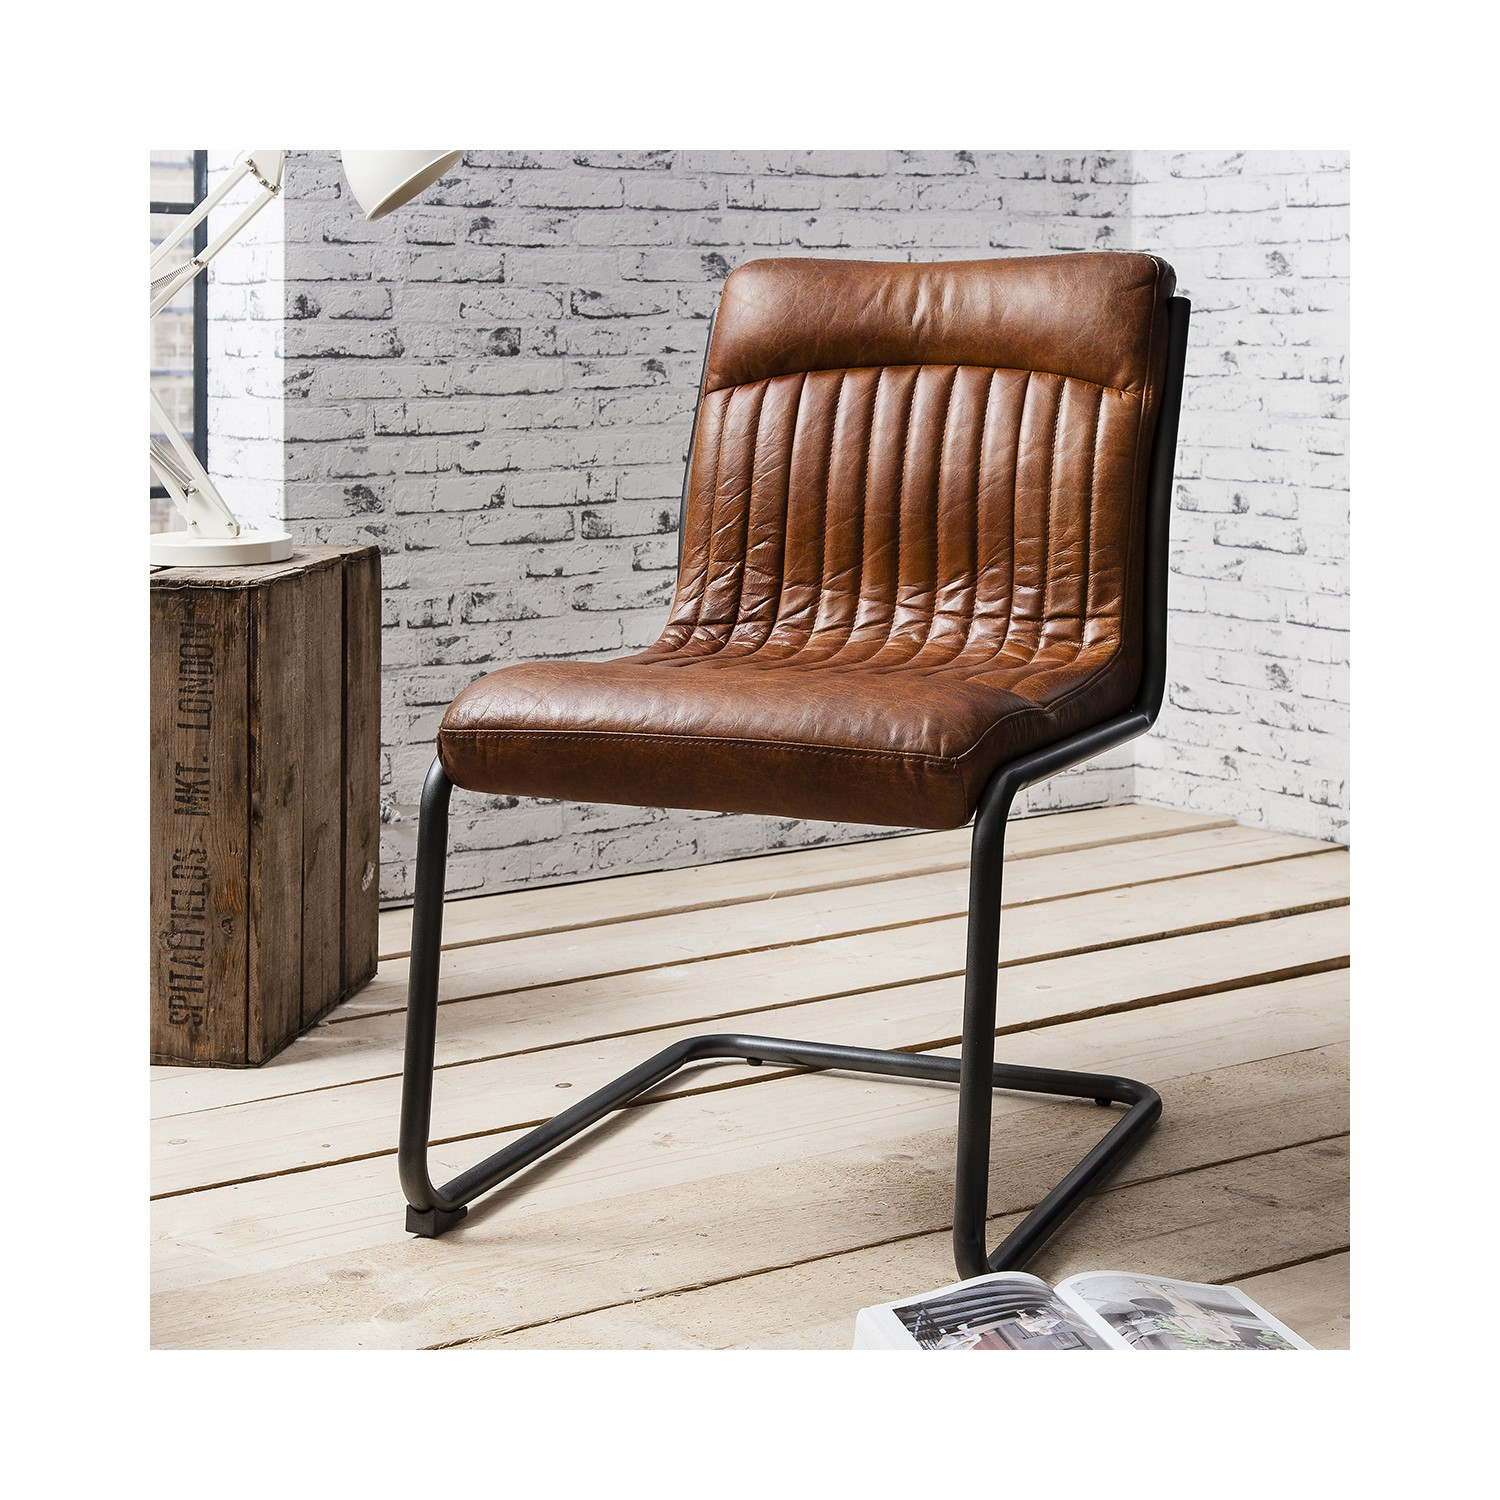 genuine leather chair reclining beach chairs portable uk capri industrial dining in antique tan fol100085